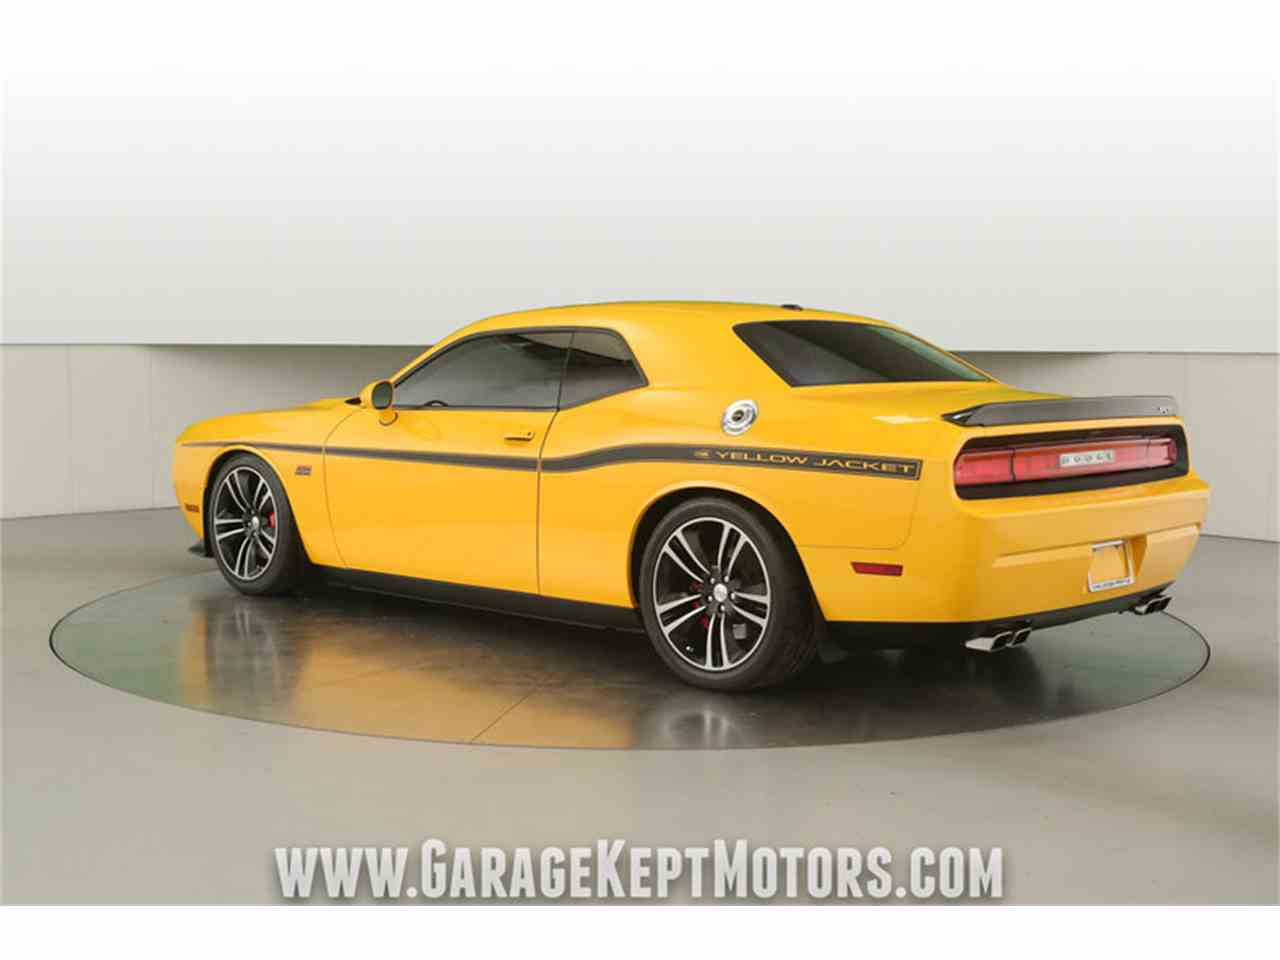 Large Picture of '12 Dodge Challenger SRT8 392 Yellow Jacket - $36,500.00 - MAXR